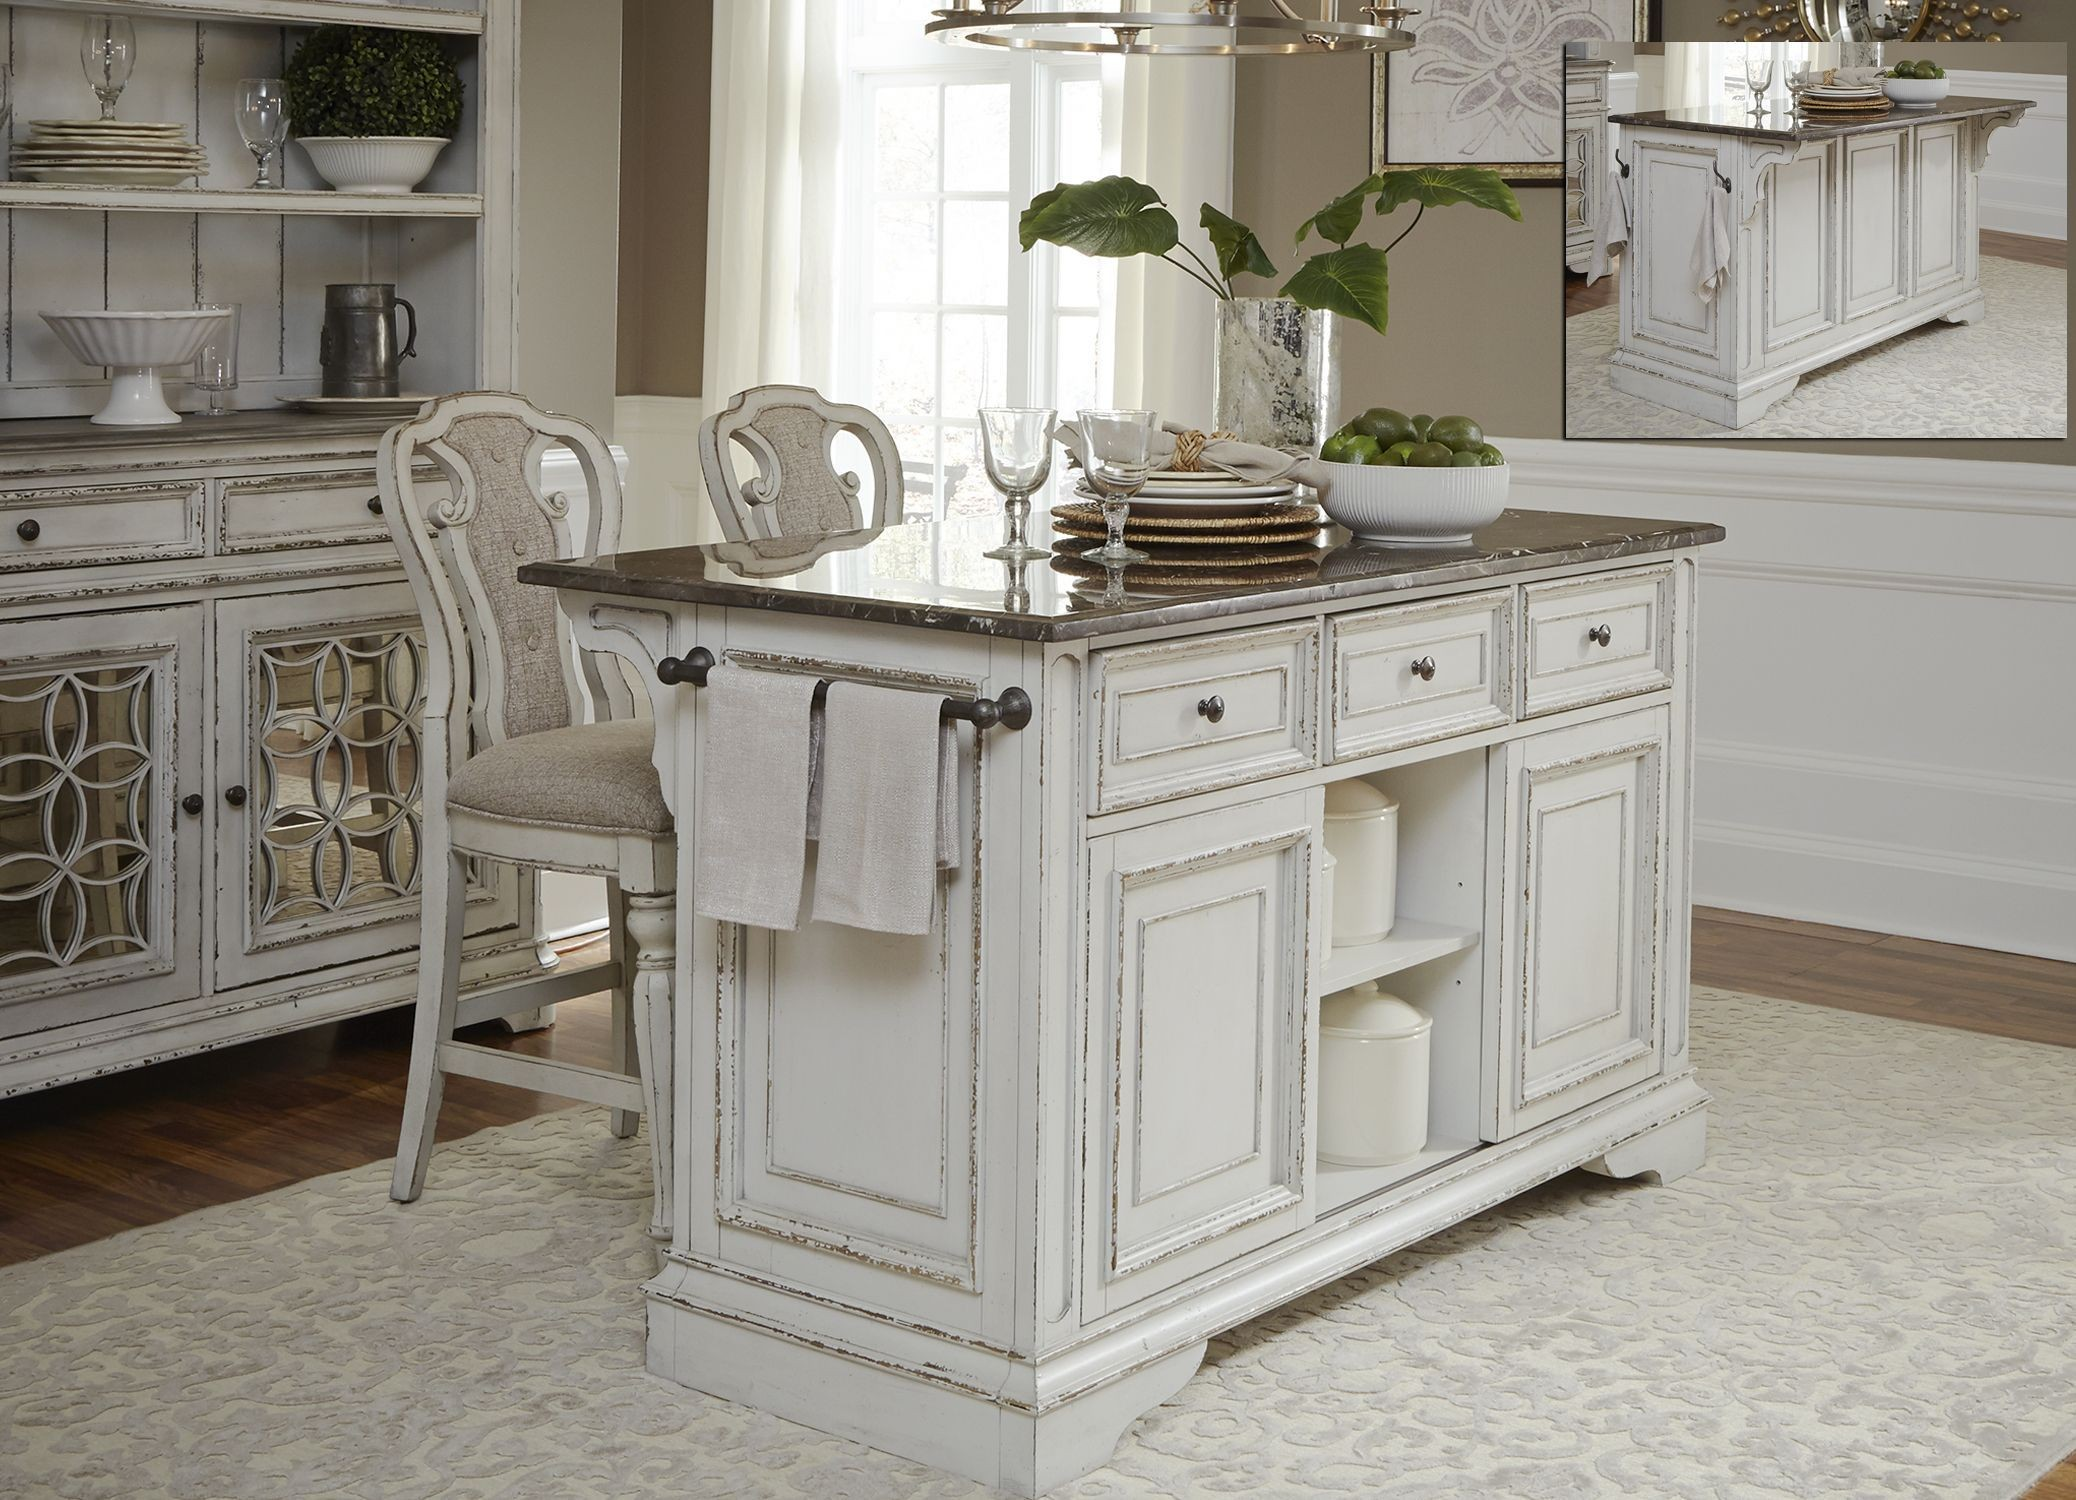 Magnolia manor antique white kitchen island set from for Antique kitchen island